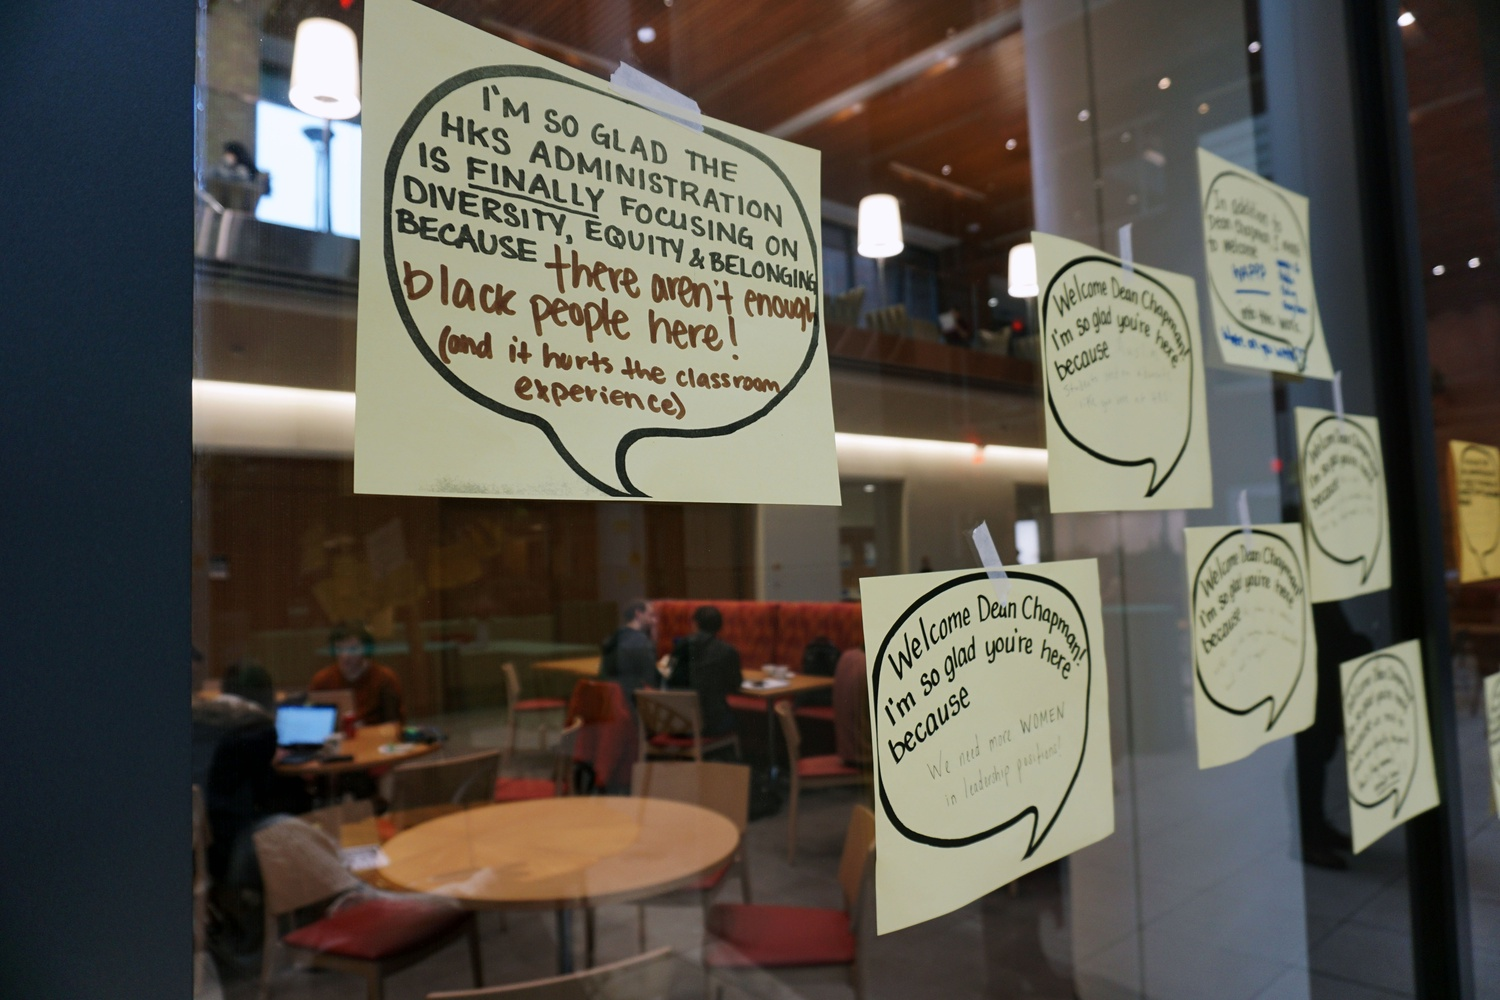 Signs posted on the walls of the Harvard Kennedy School welcoming the school's new diversity dean,  Robbin Chapman.